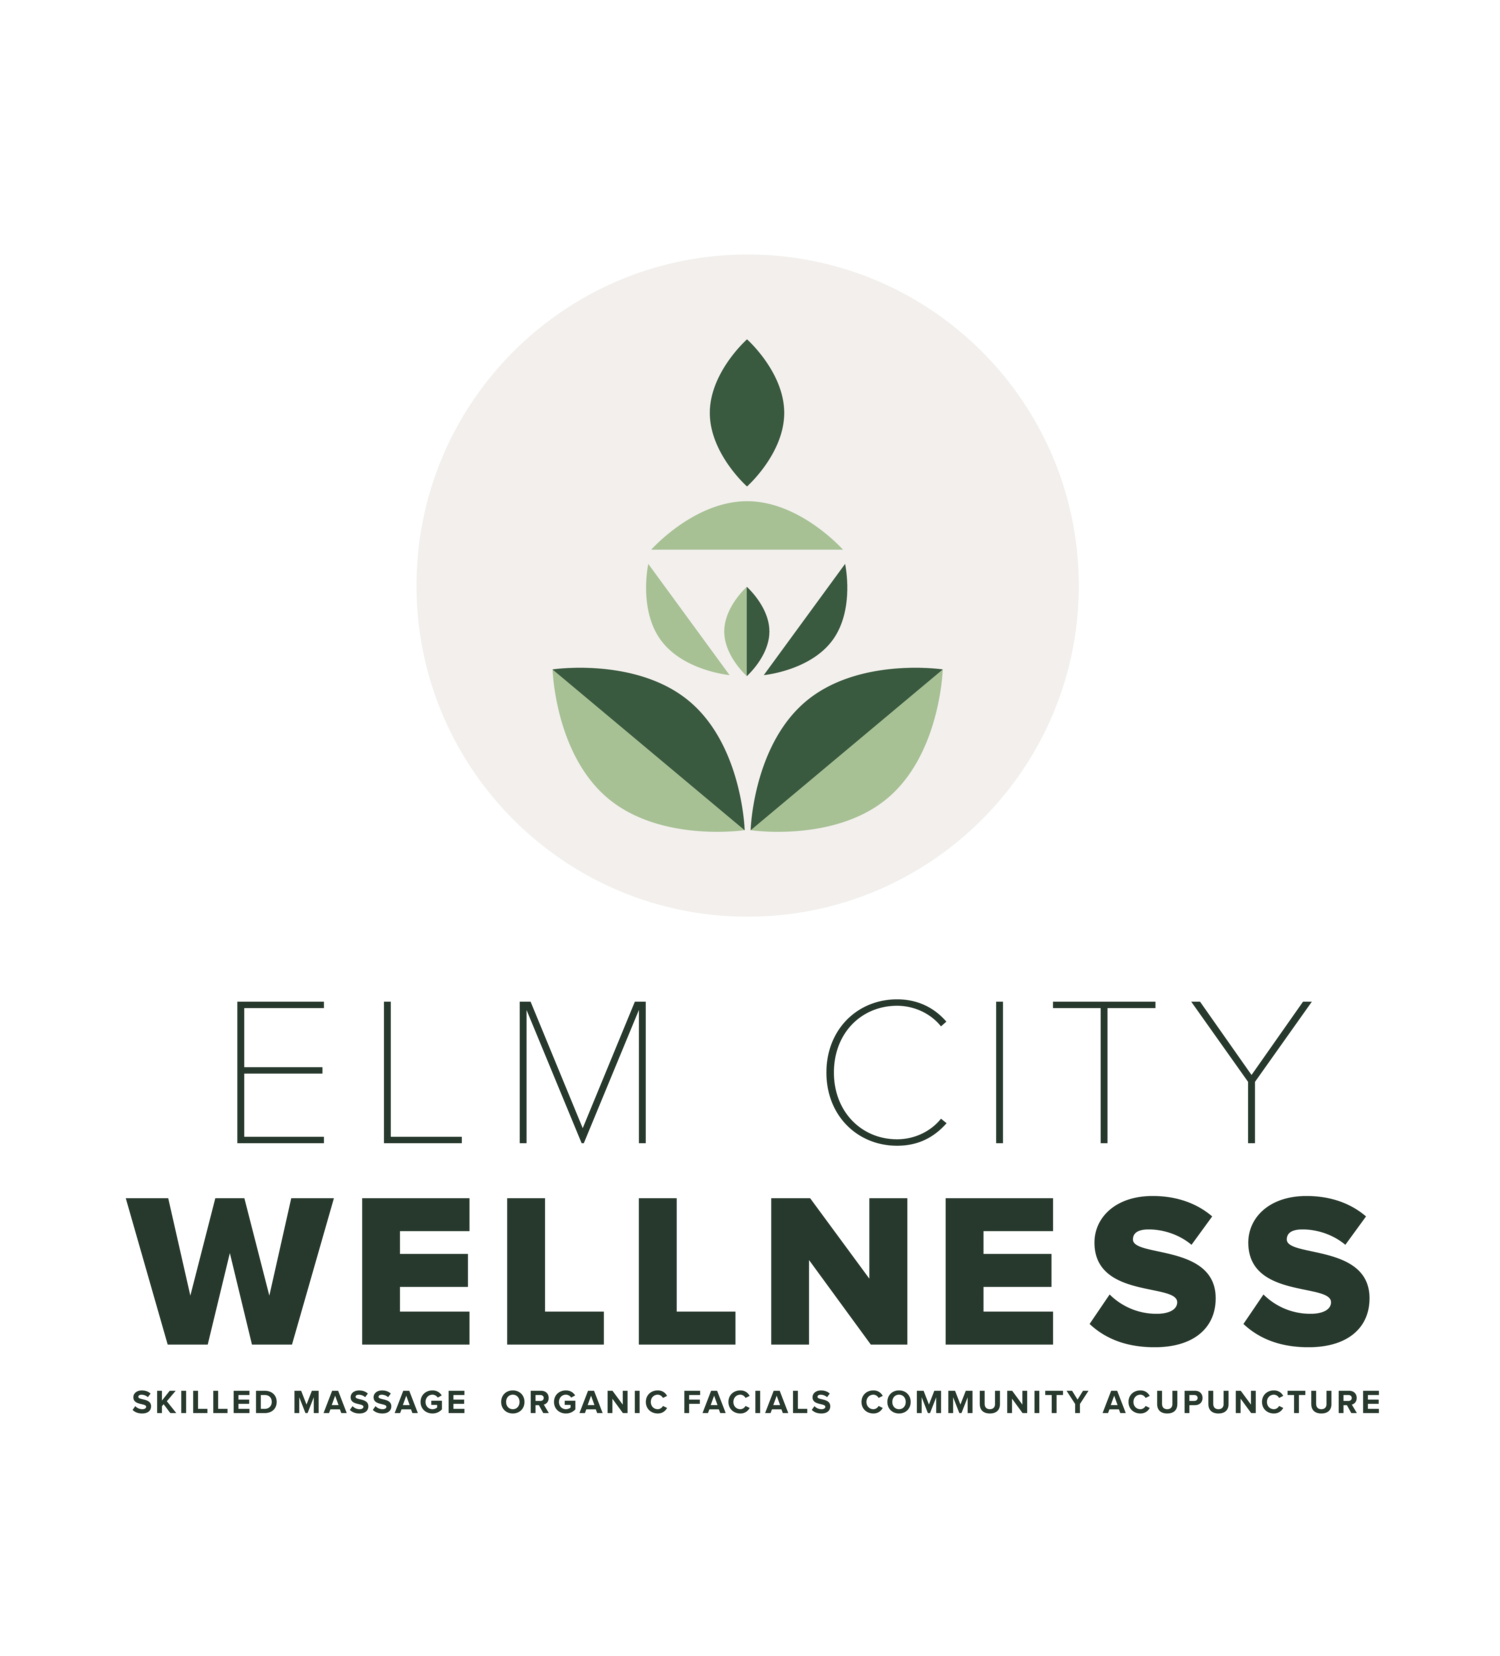 Elm City Wellness